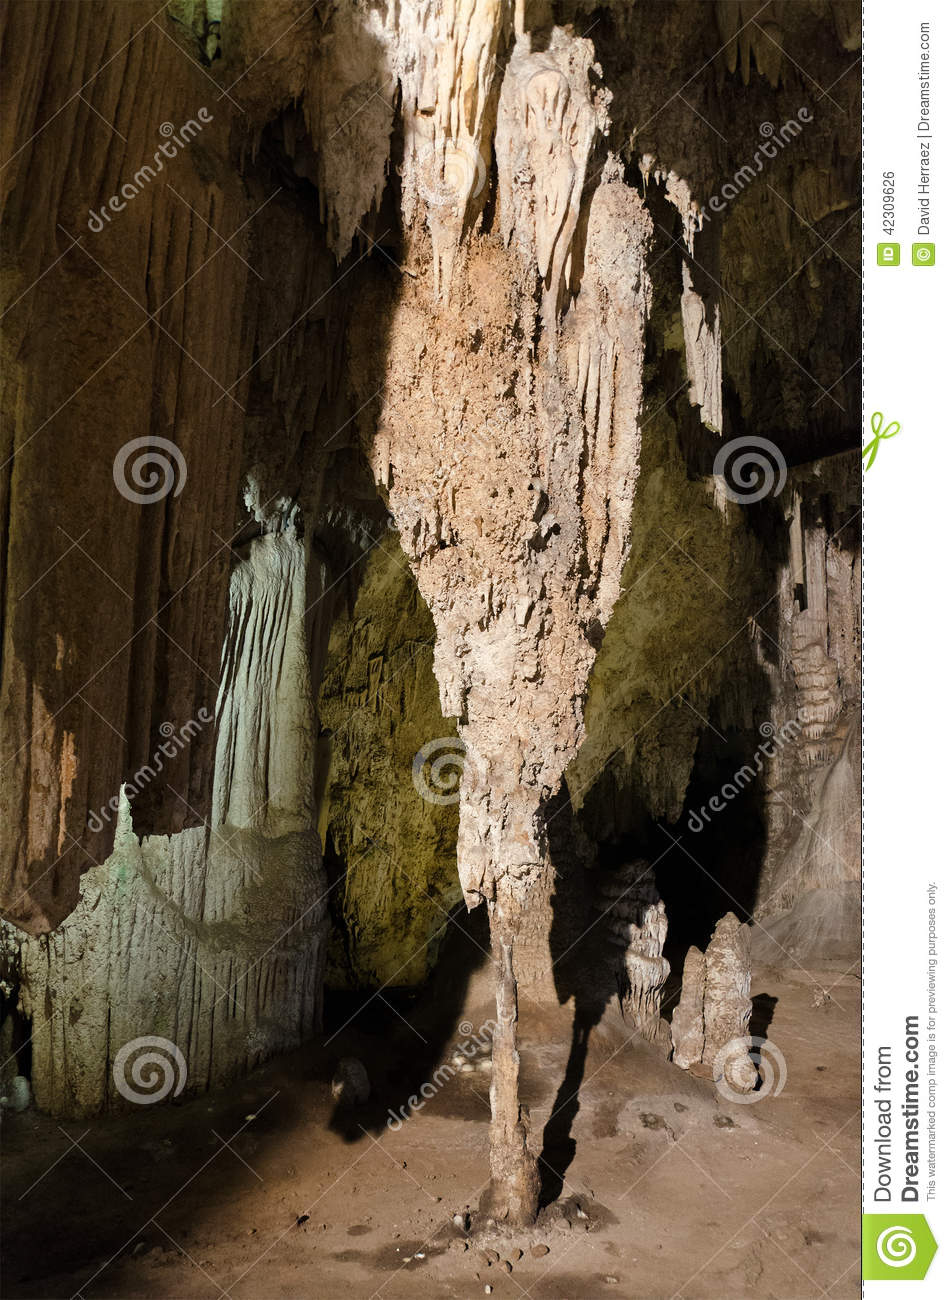 Formations; Stalactites and stalagmites in the famous Nerja Caves